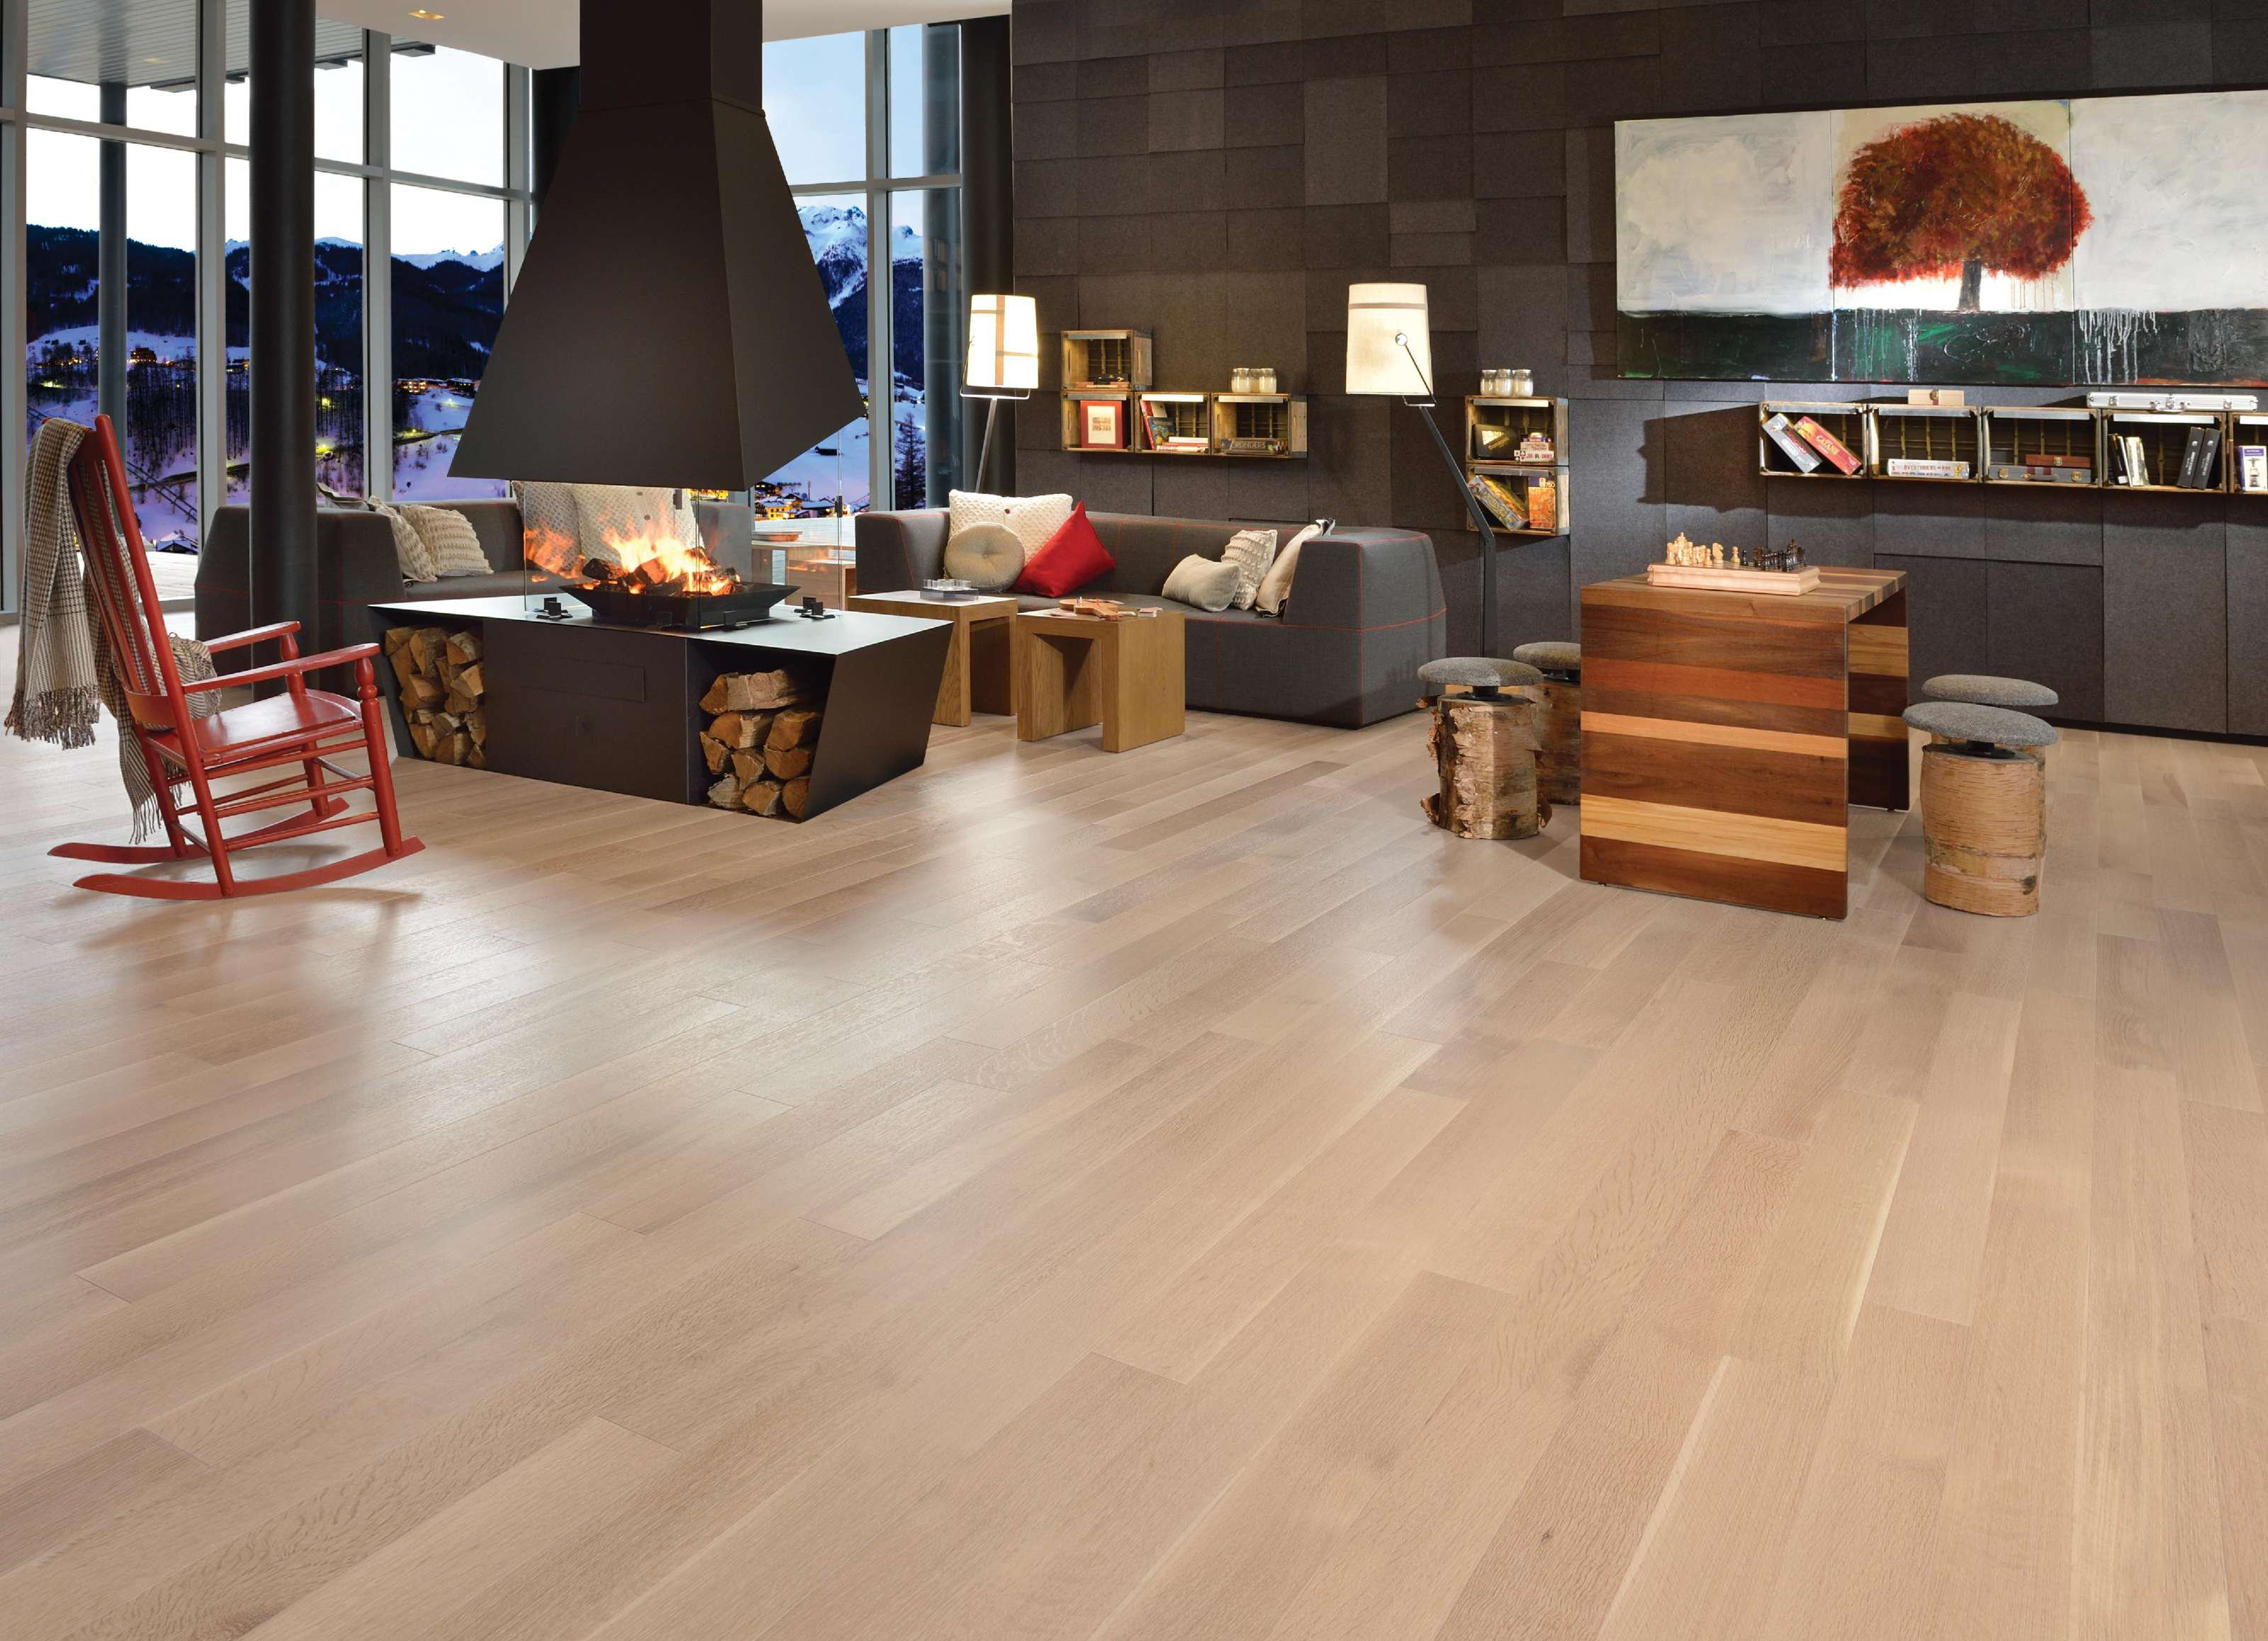 Alive white oak r q isla mirage hardwood floors for Mirage wood floors